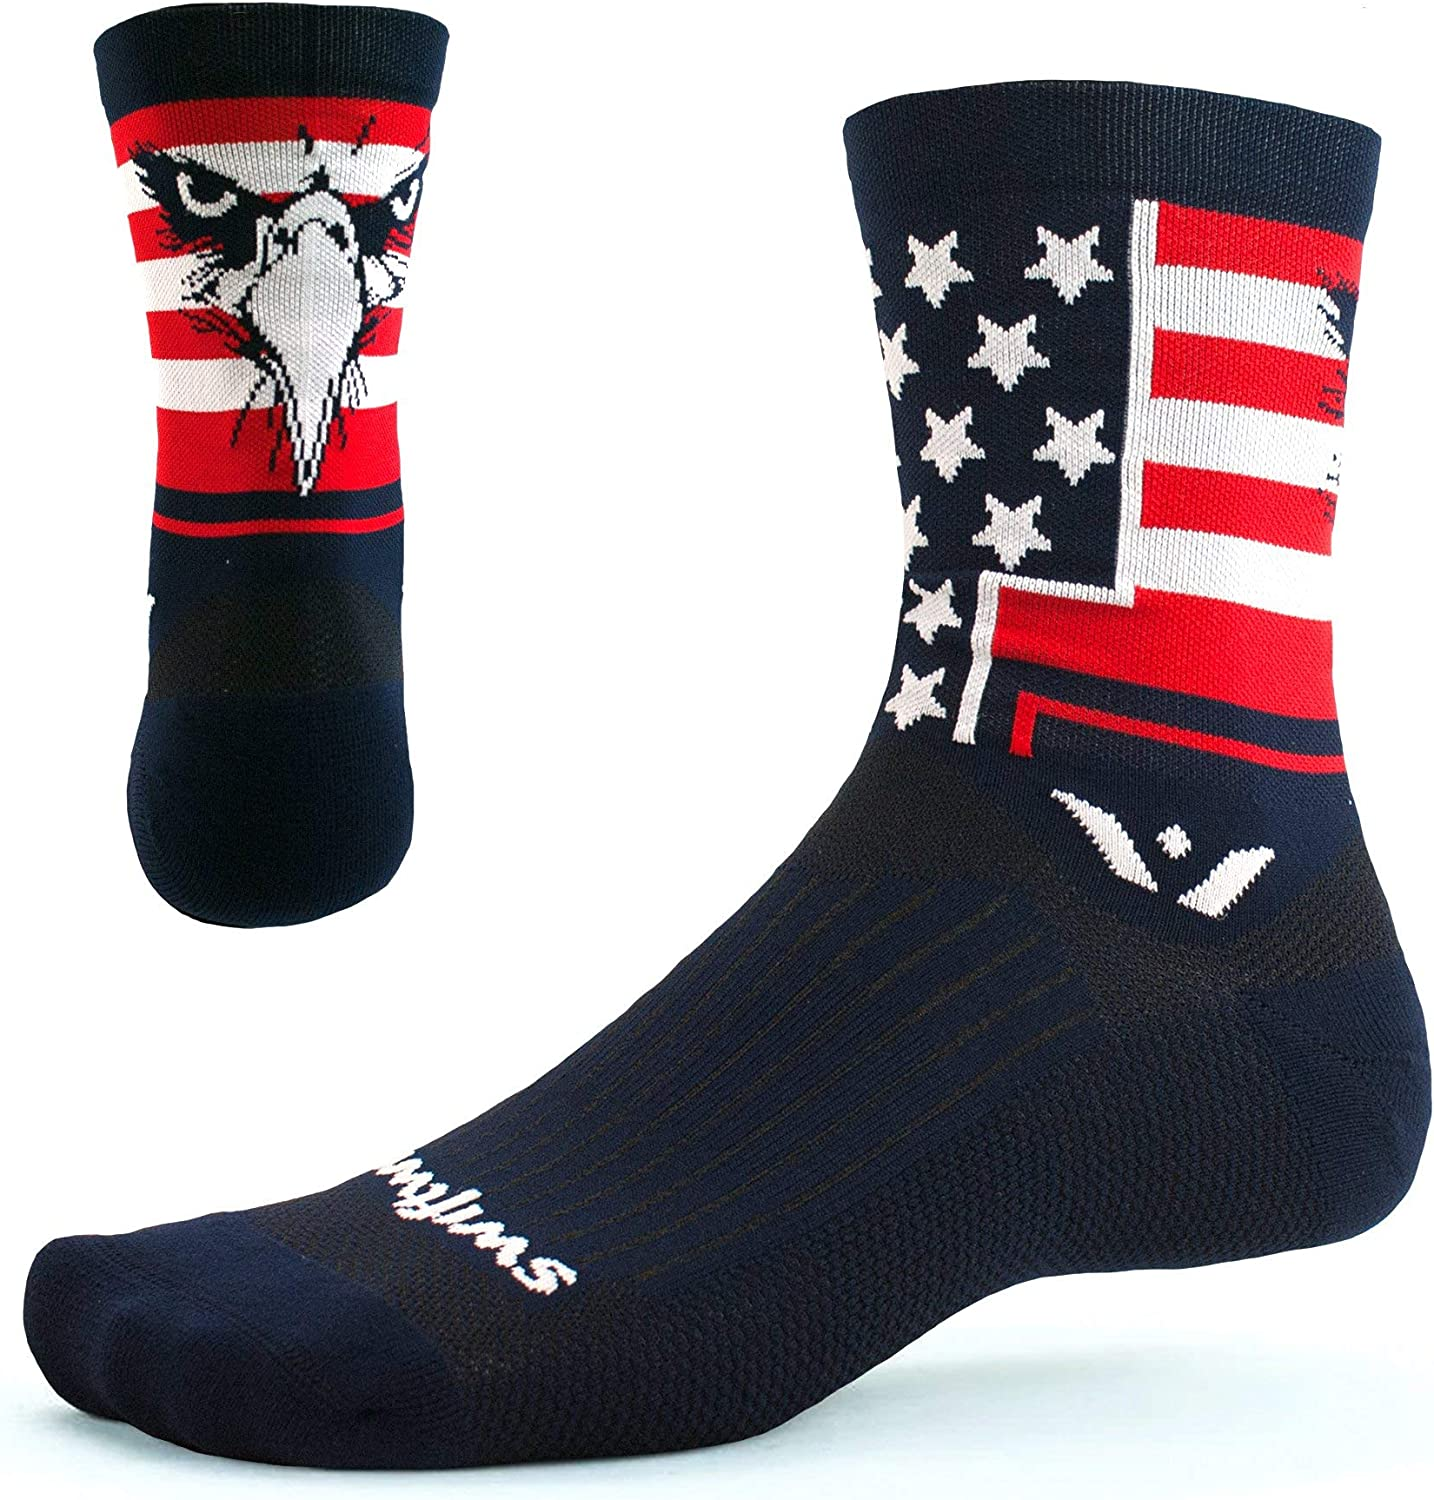 Swiftwick- VISION FIVE Running & Cycling Socks for Men & Women- Fast Dry, Cushioned, Crew